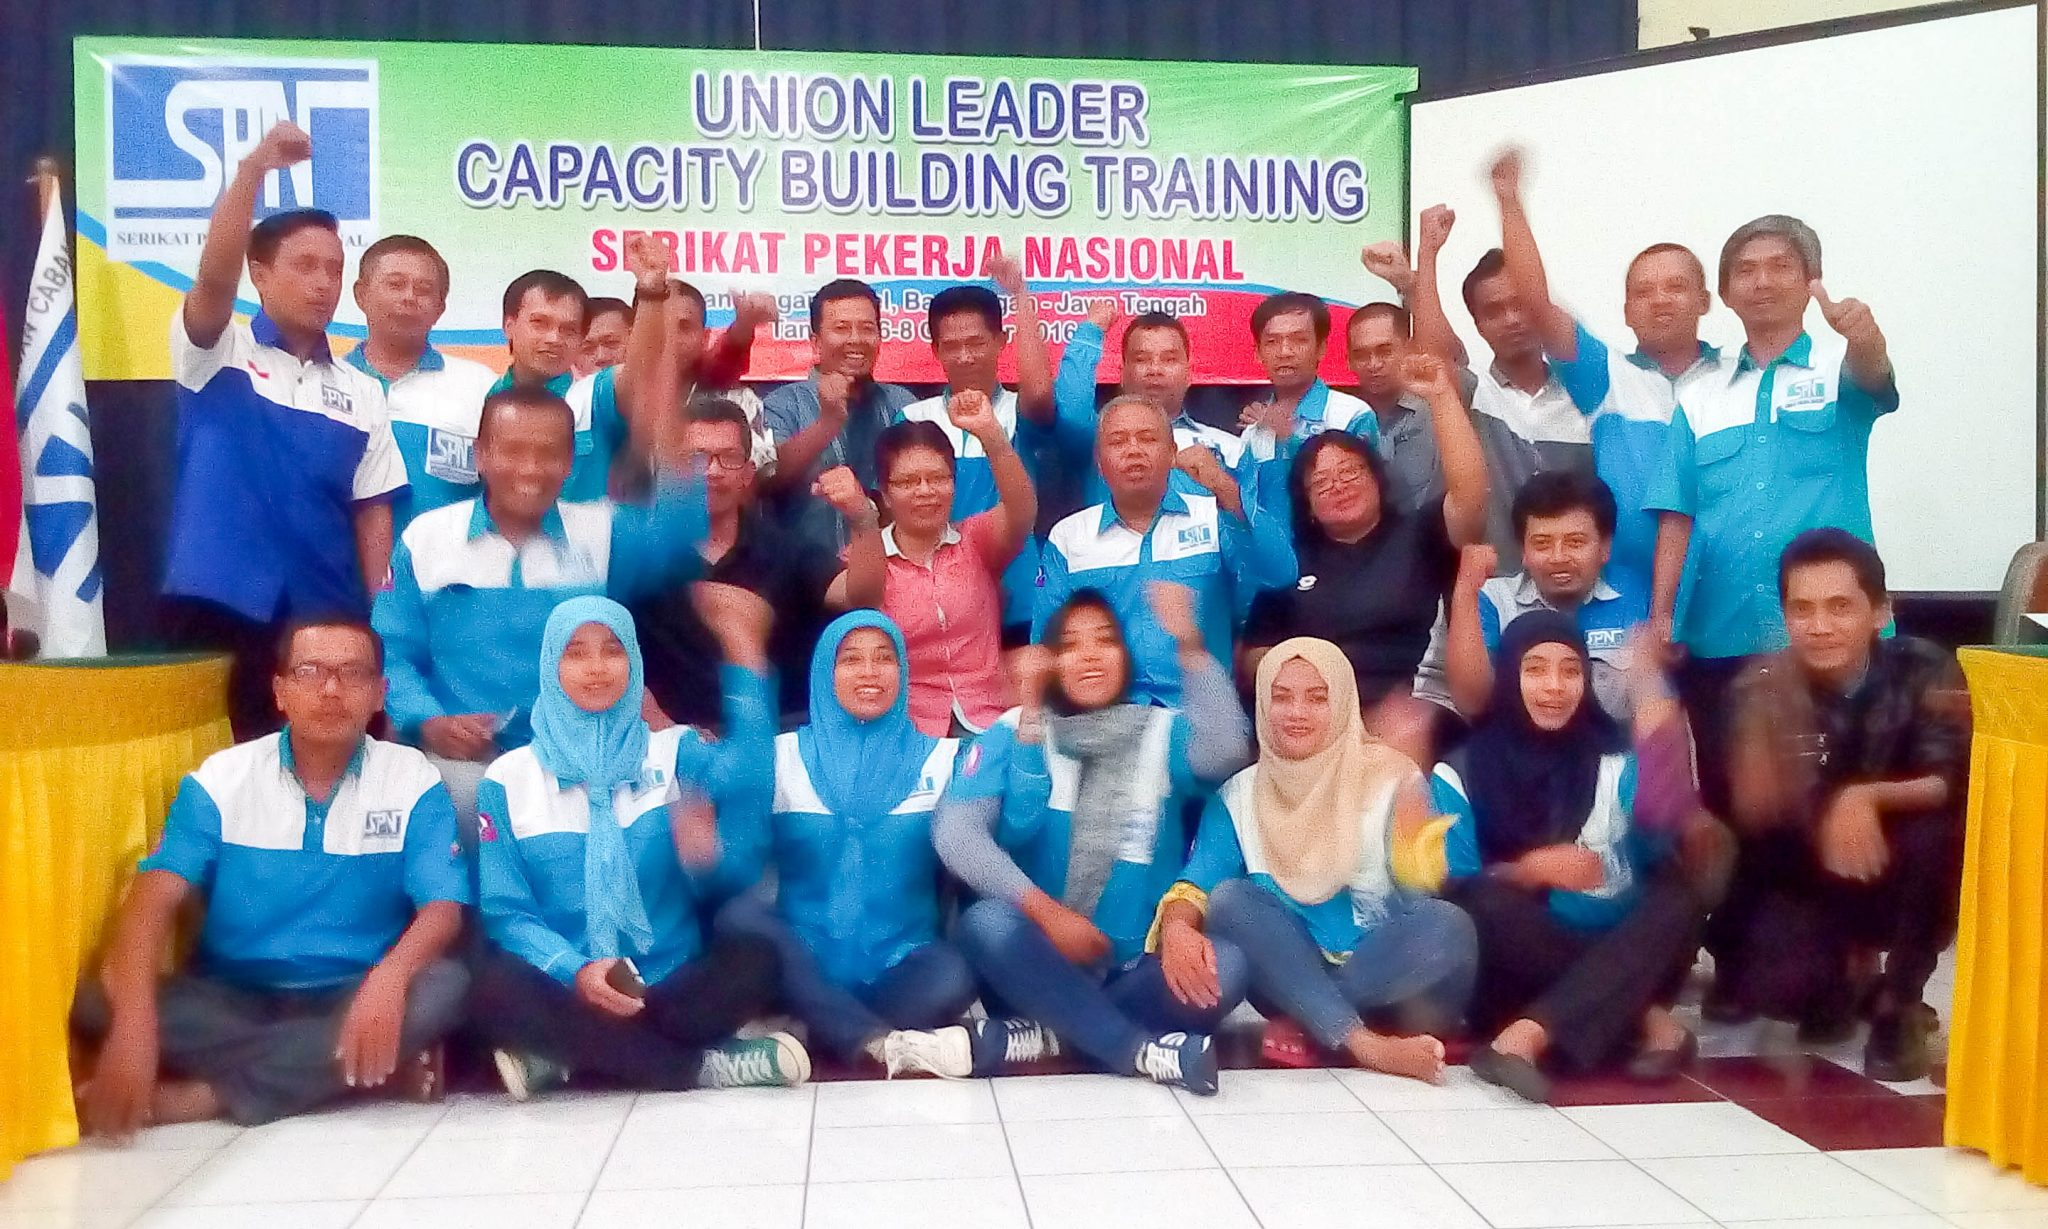 UNION LEADER CAPACITY BUILDING TRAINING